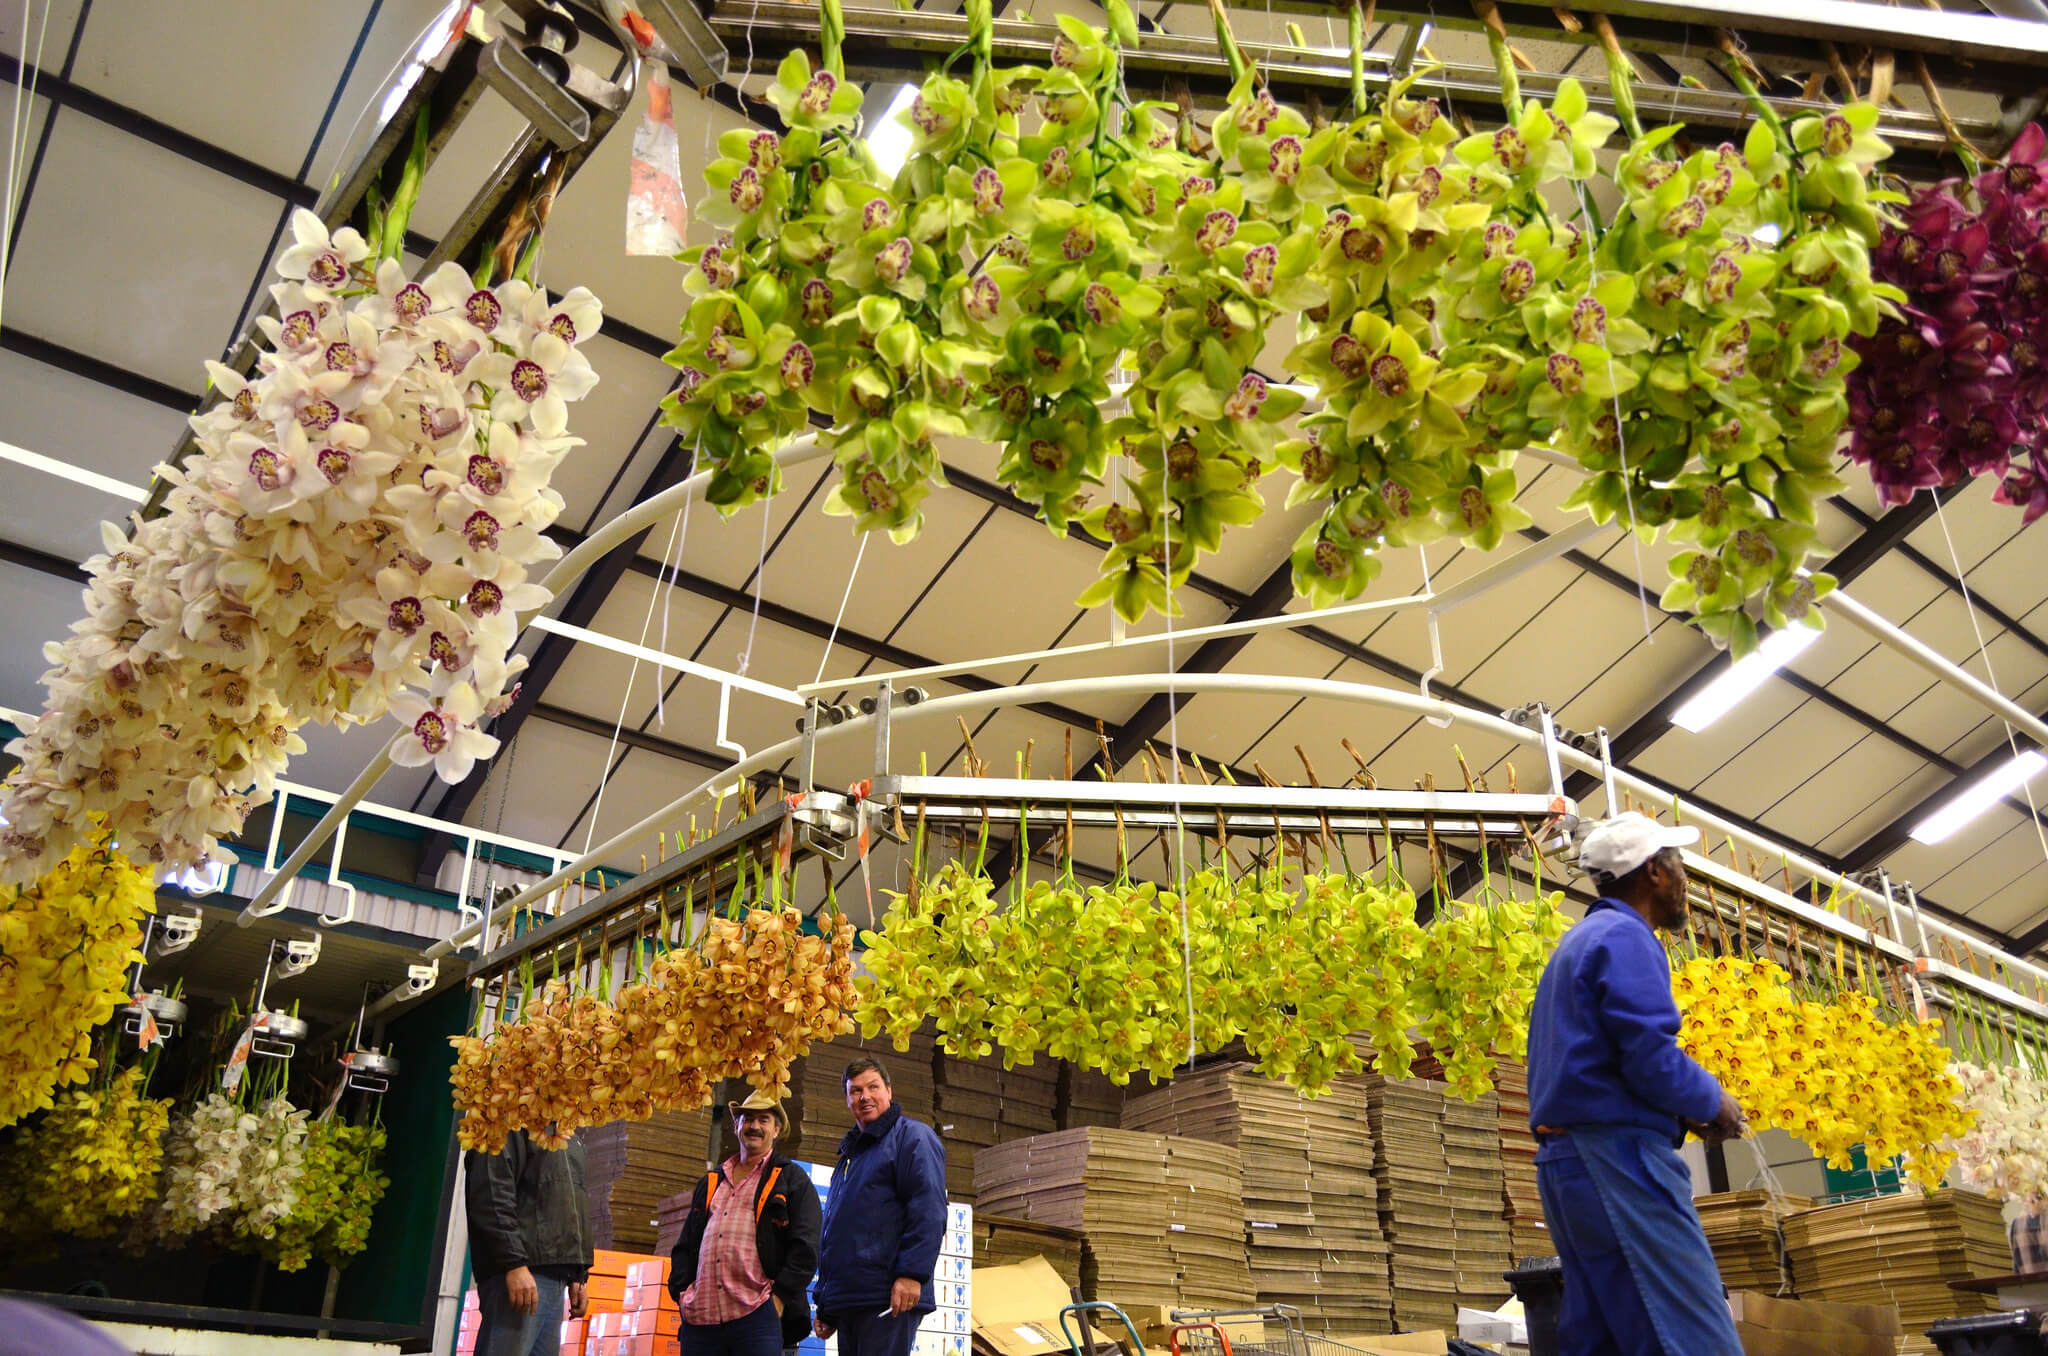 image of flowers being packaged for export by Duckitt Nurseries